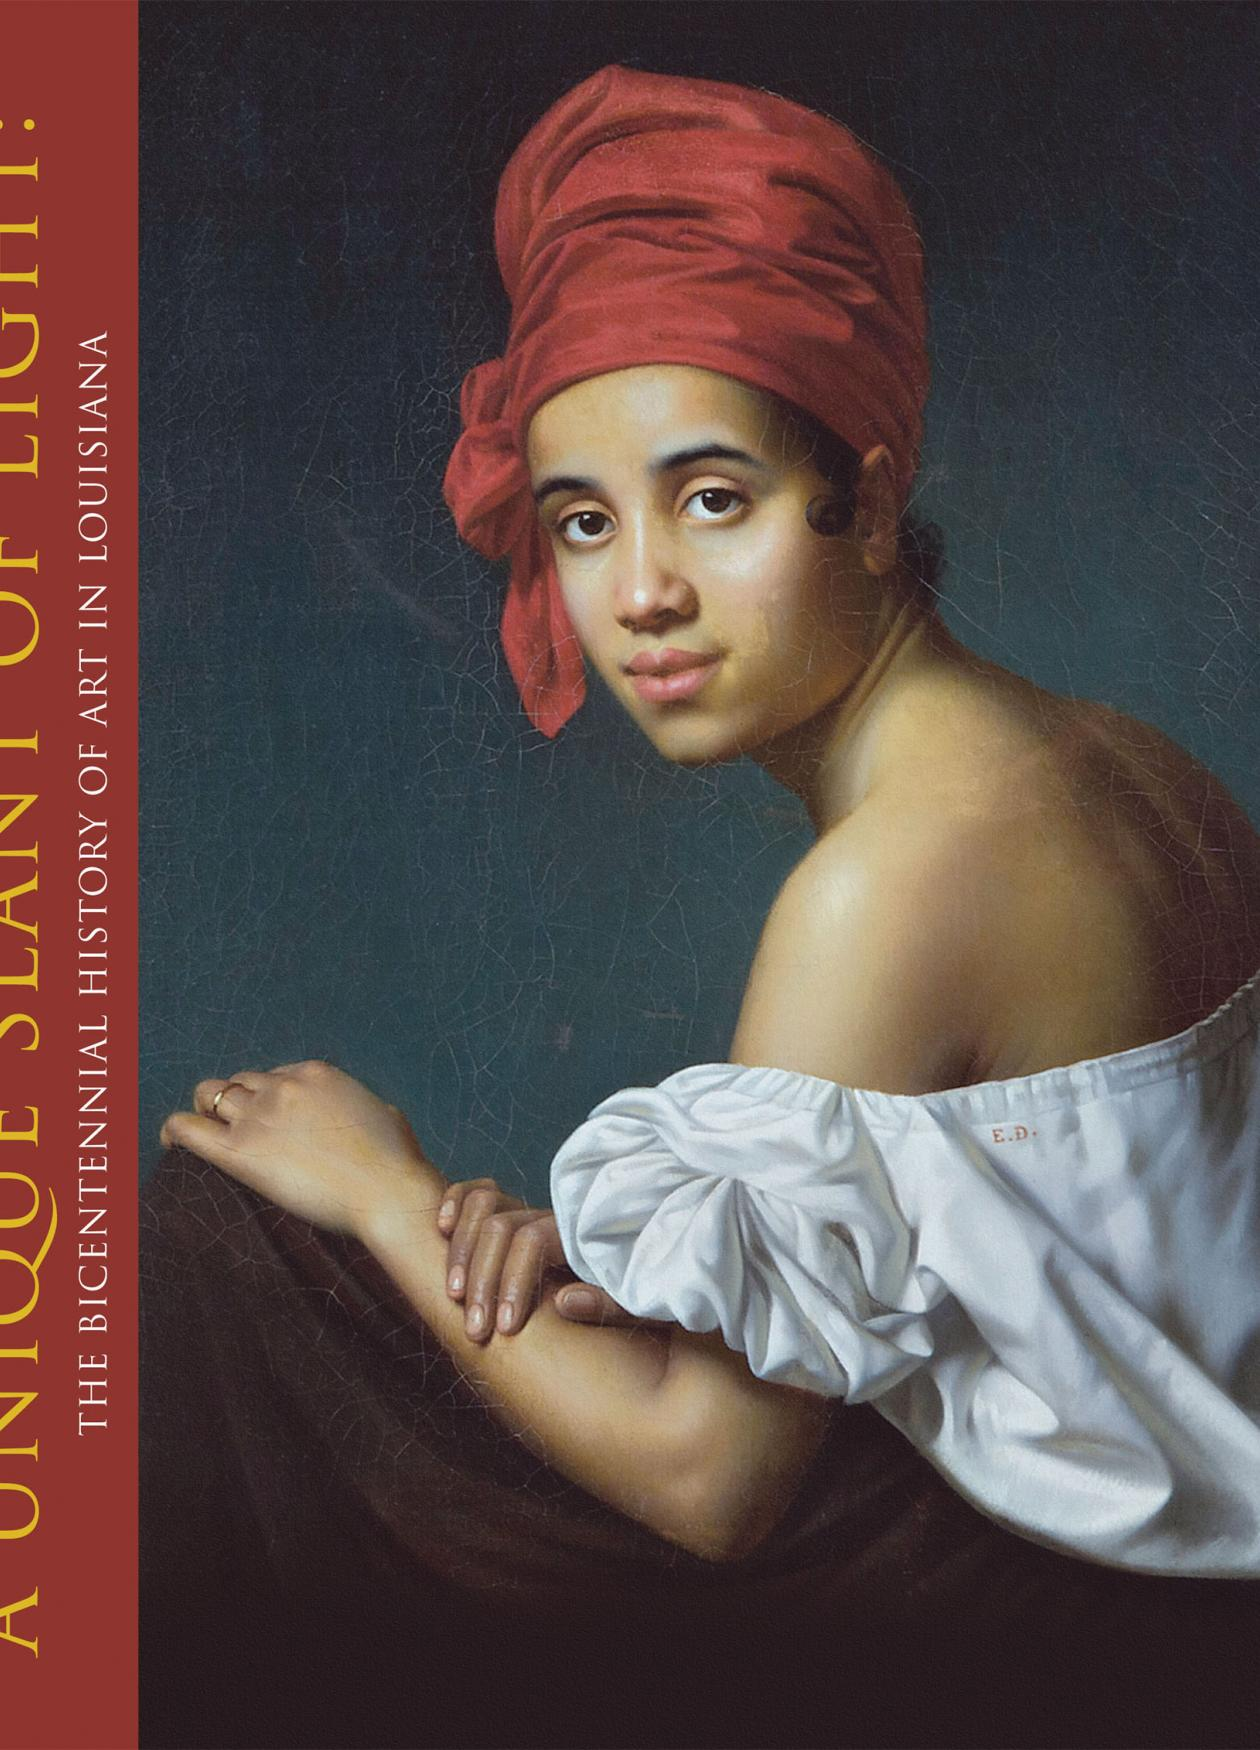 Image of a book cover depicting a creole female in a red headdress and white blouse.